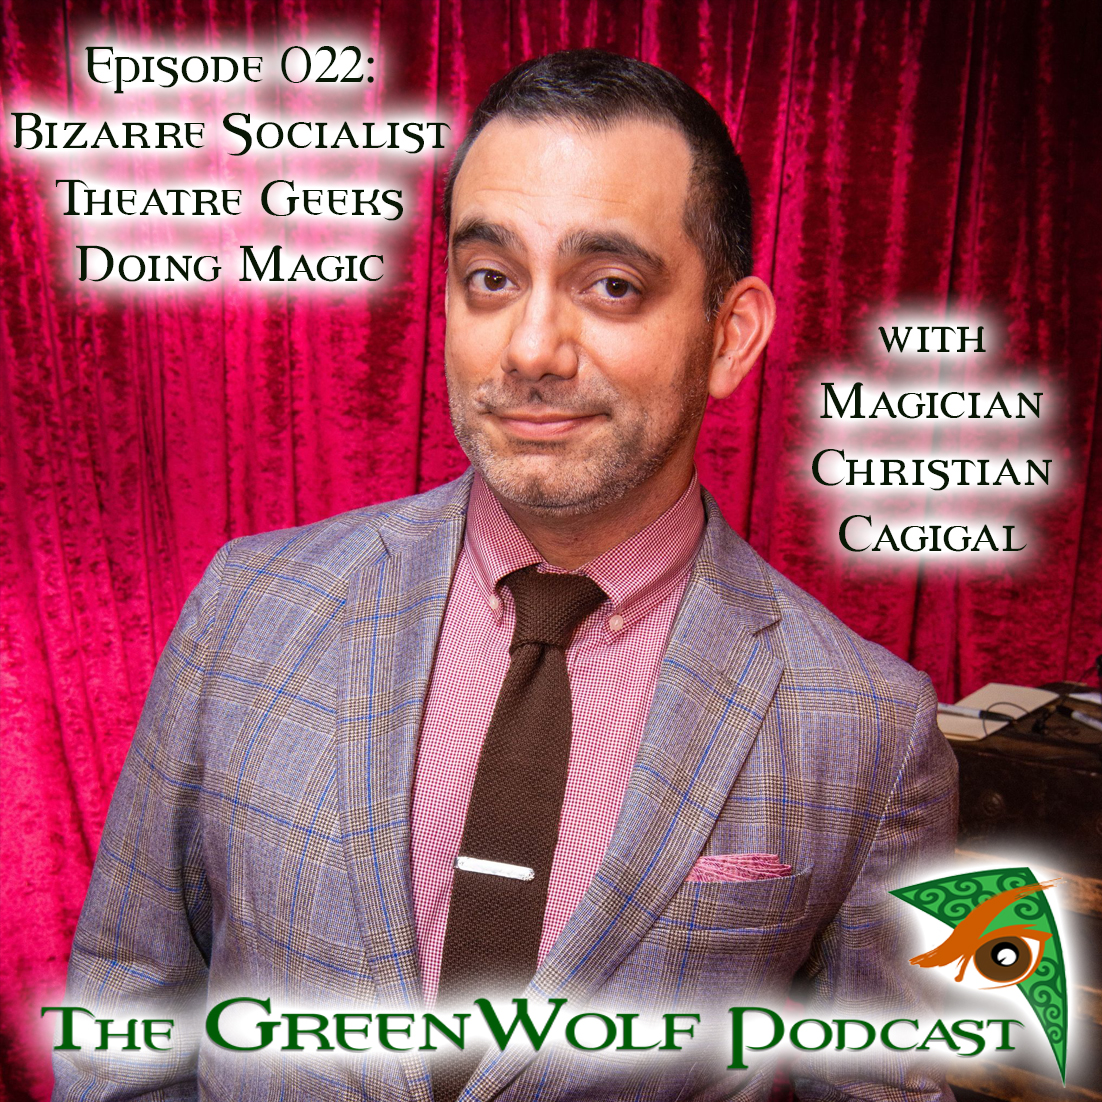 The GreenWolf Podcast - Ep 022- Bizarre Socialist Theatre Geeks Do Magic with Magician Christian Cagigal